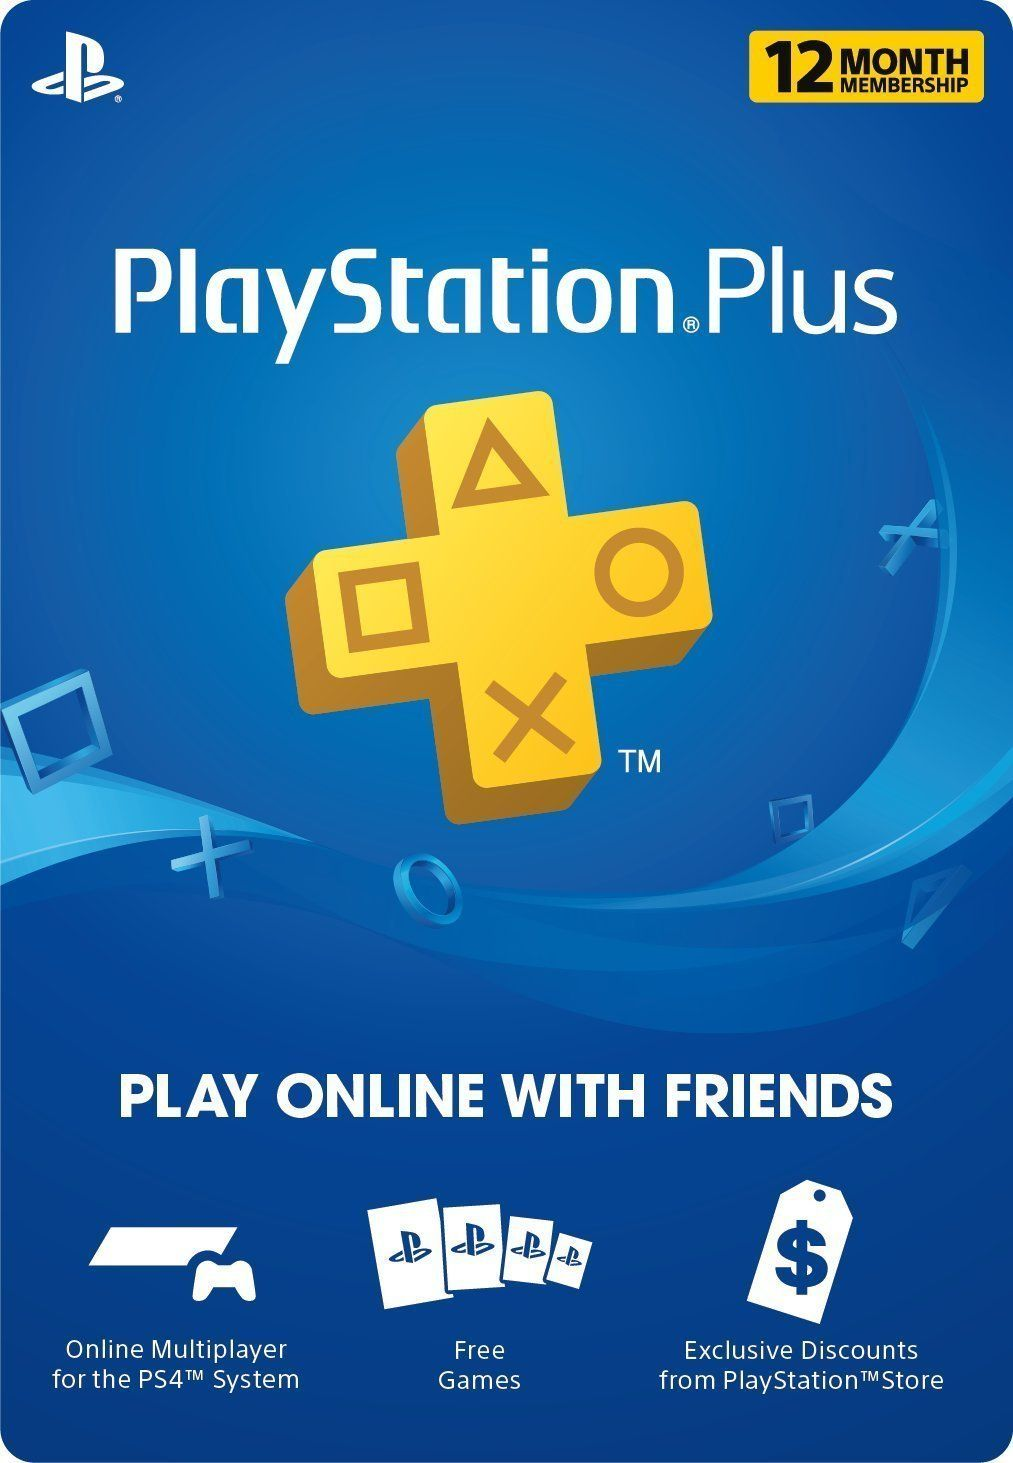 How To Get 1 Month Free Playstation Plus Ps4